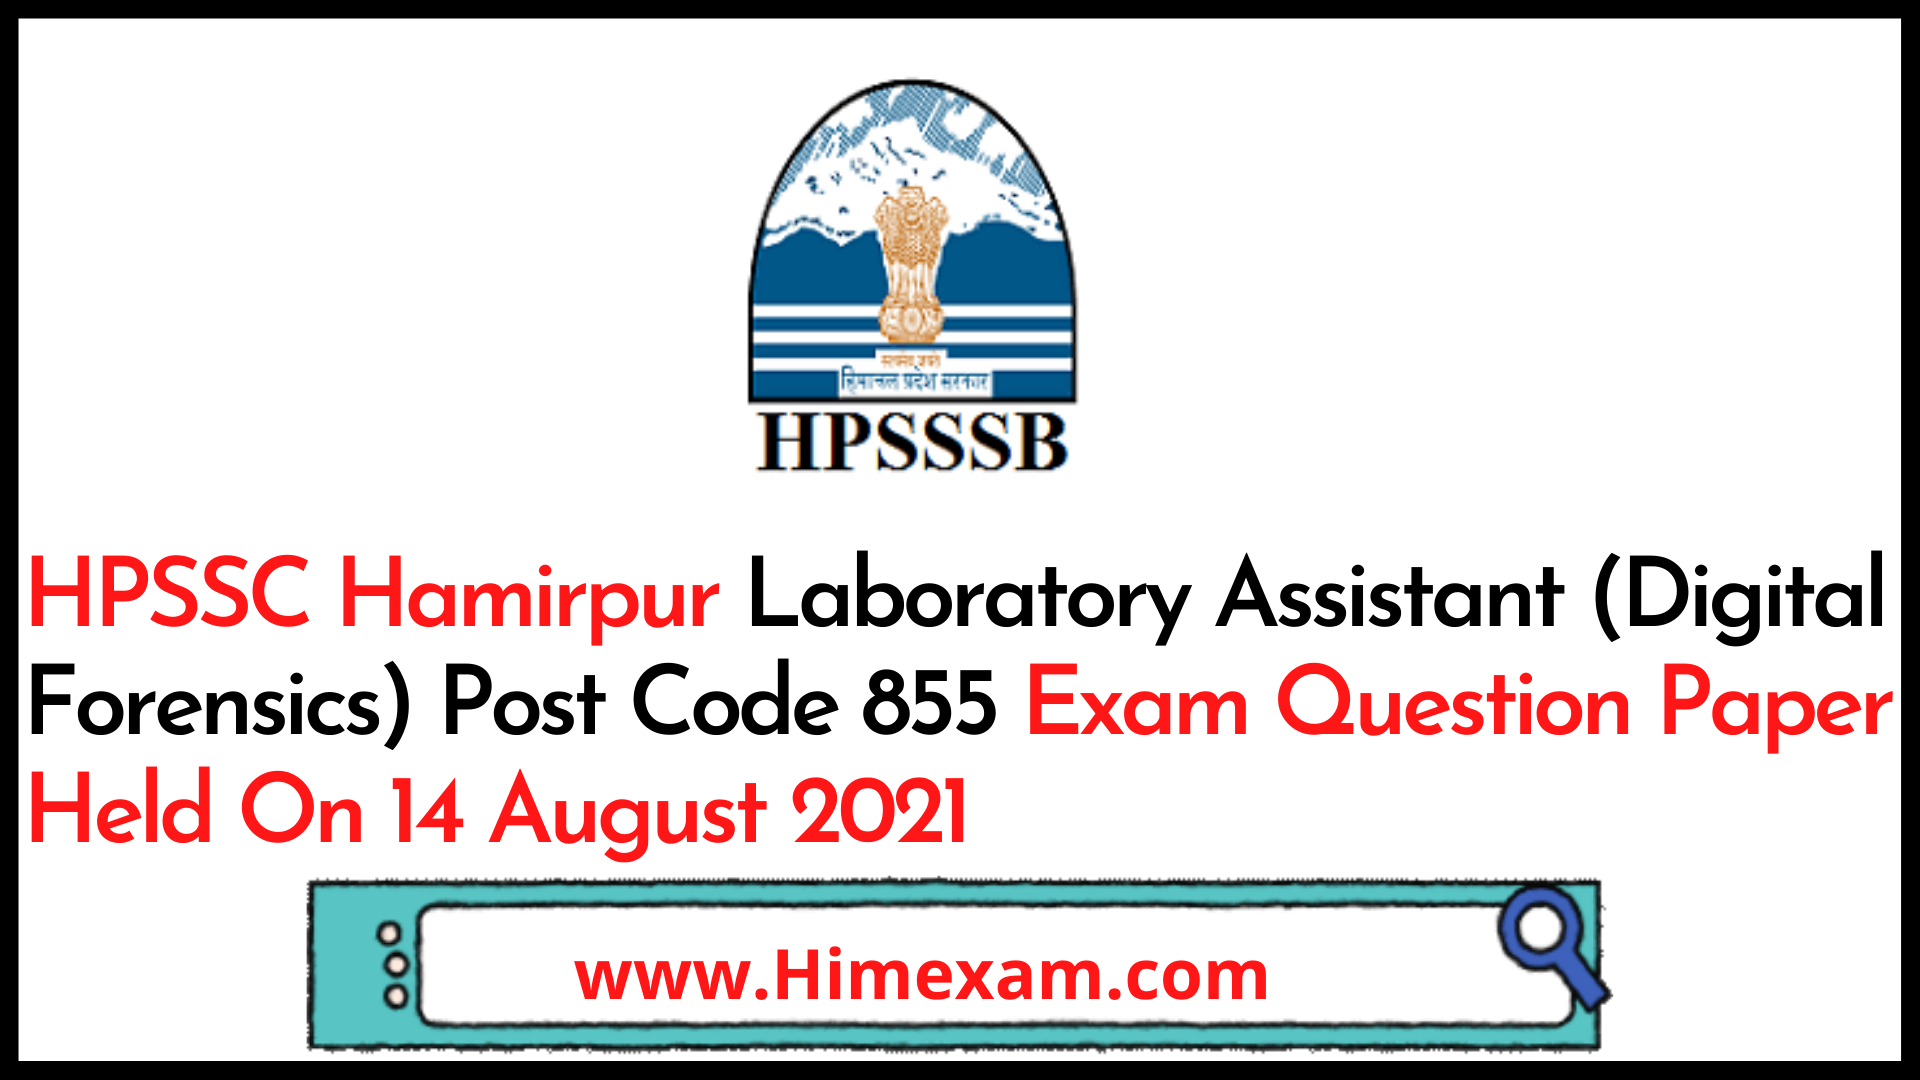 HPSSC Hamirpur Laboratory Assistant (Digital Forensics) Post Code 855 Exam Question Paper Held On 14 August 2021